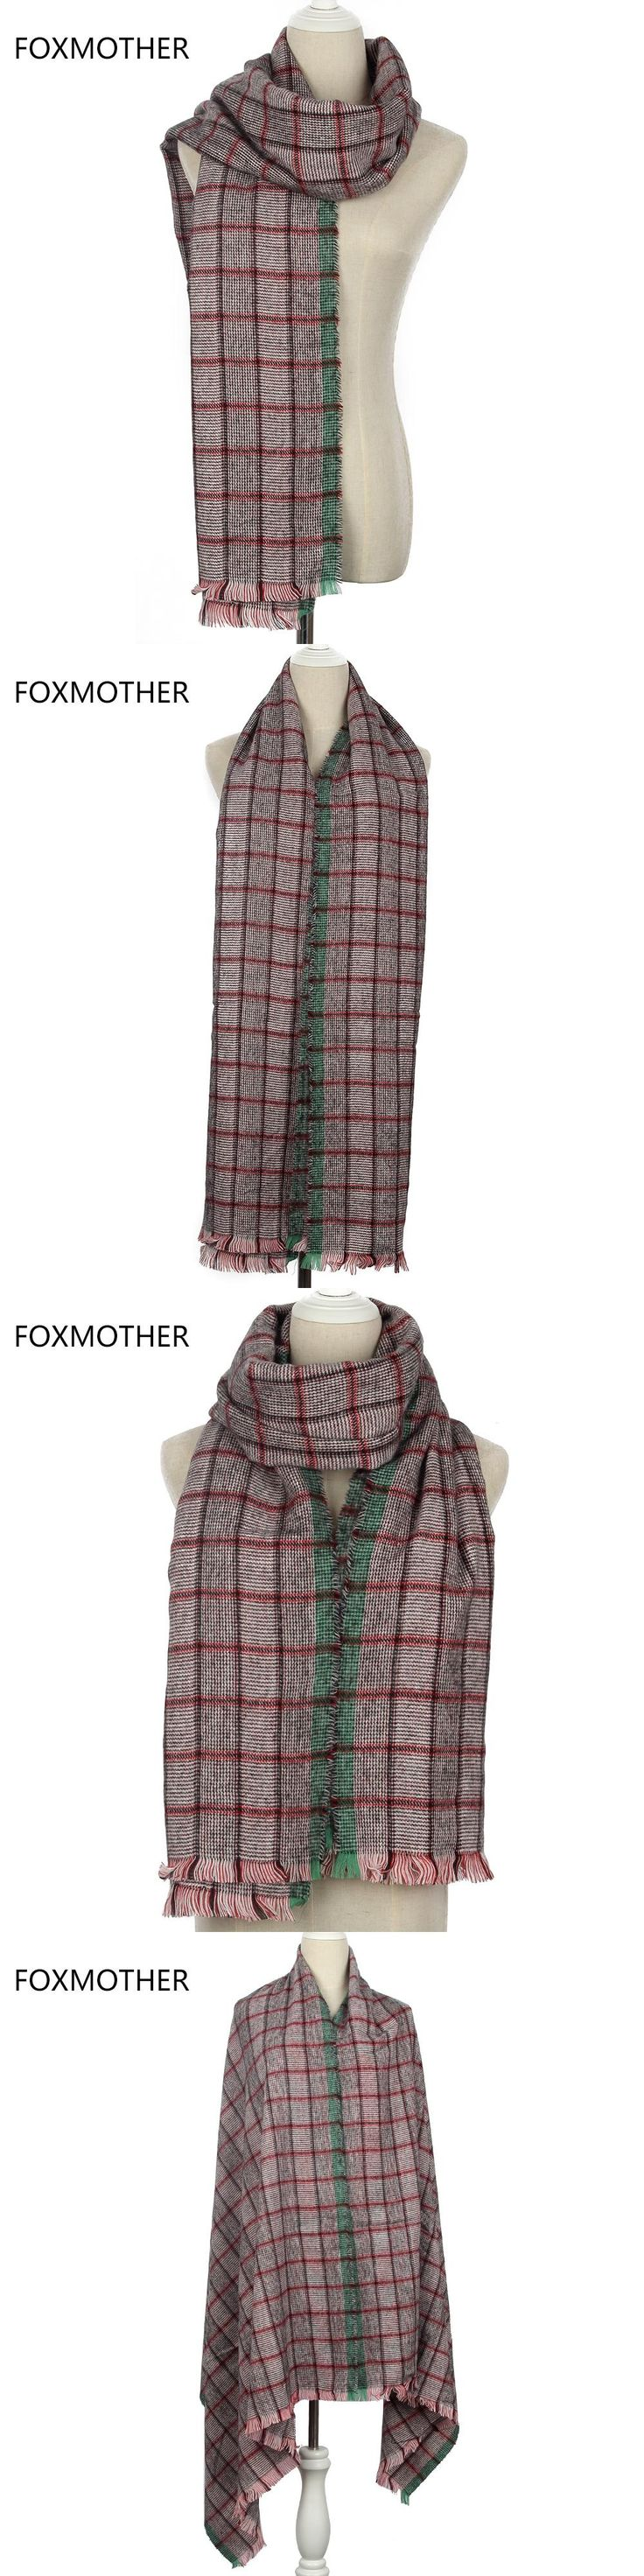 FOXMOTHER 2017 New Womens Fashion Winter Oversized Cashmere Green Red Multicolor Plaid Blanket Scarf For Mens